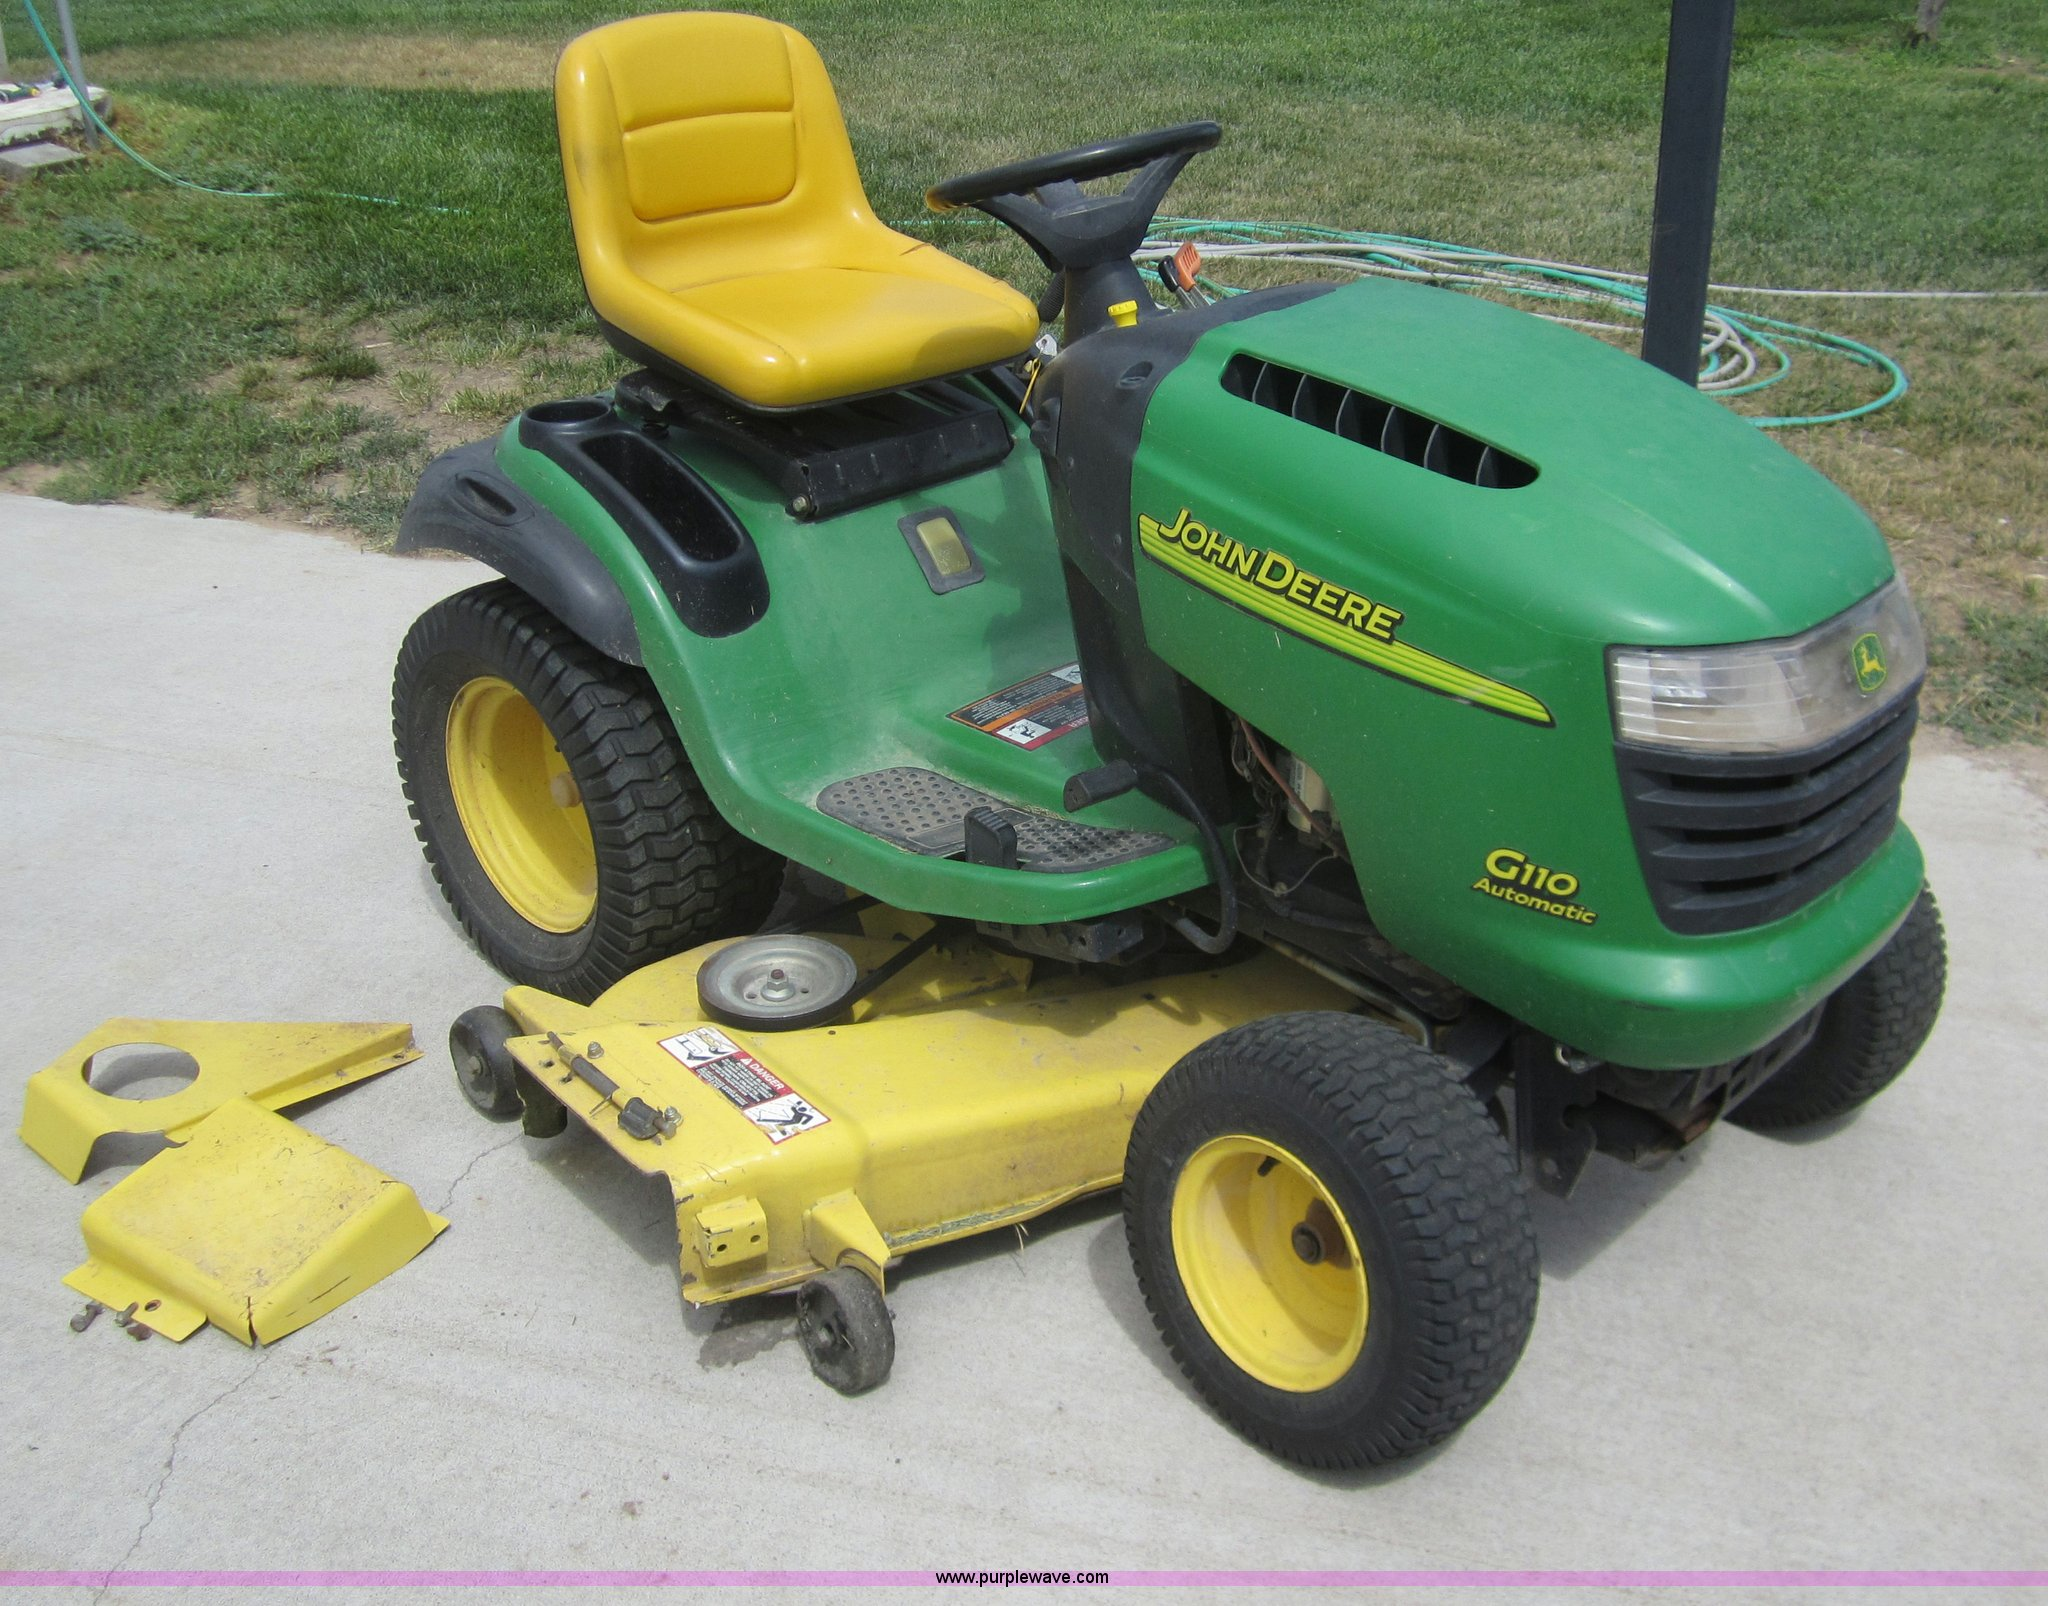 John Deere G110 Repair Manual Lx173 Wiring Diagram Automatic Lawn Mower Item C9777 Sold Au Rh Purplewave Com Parts Tractors